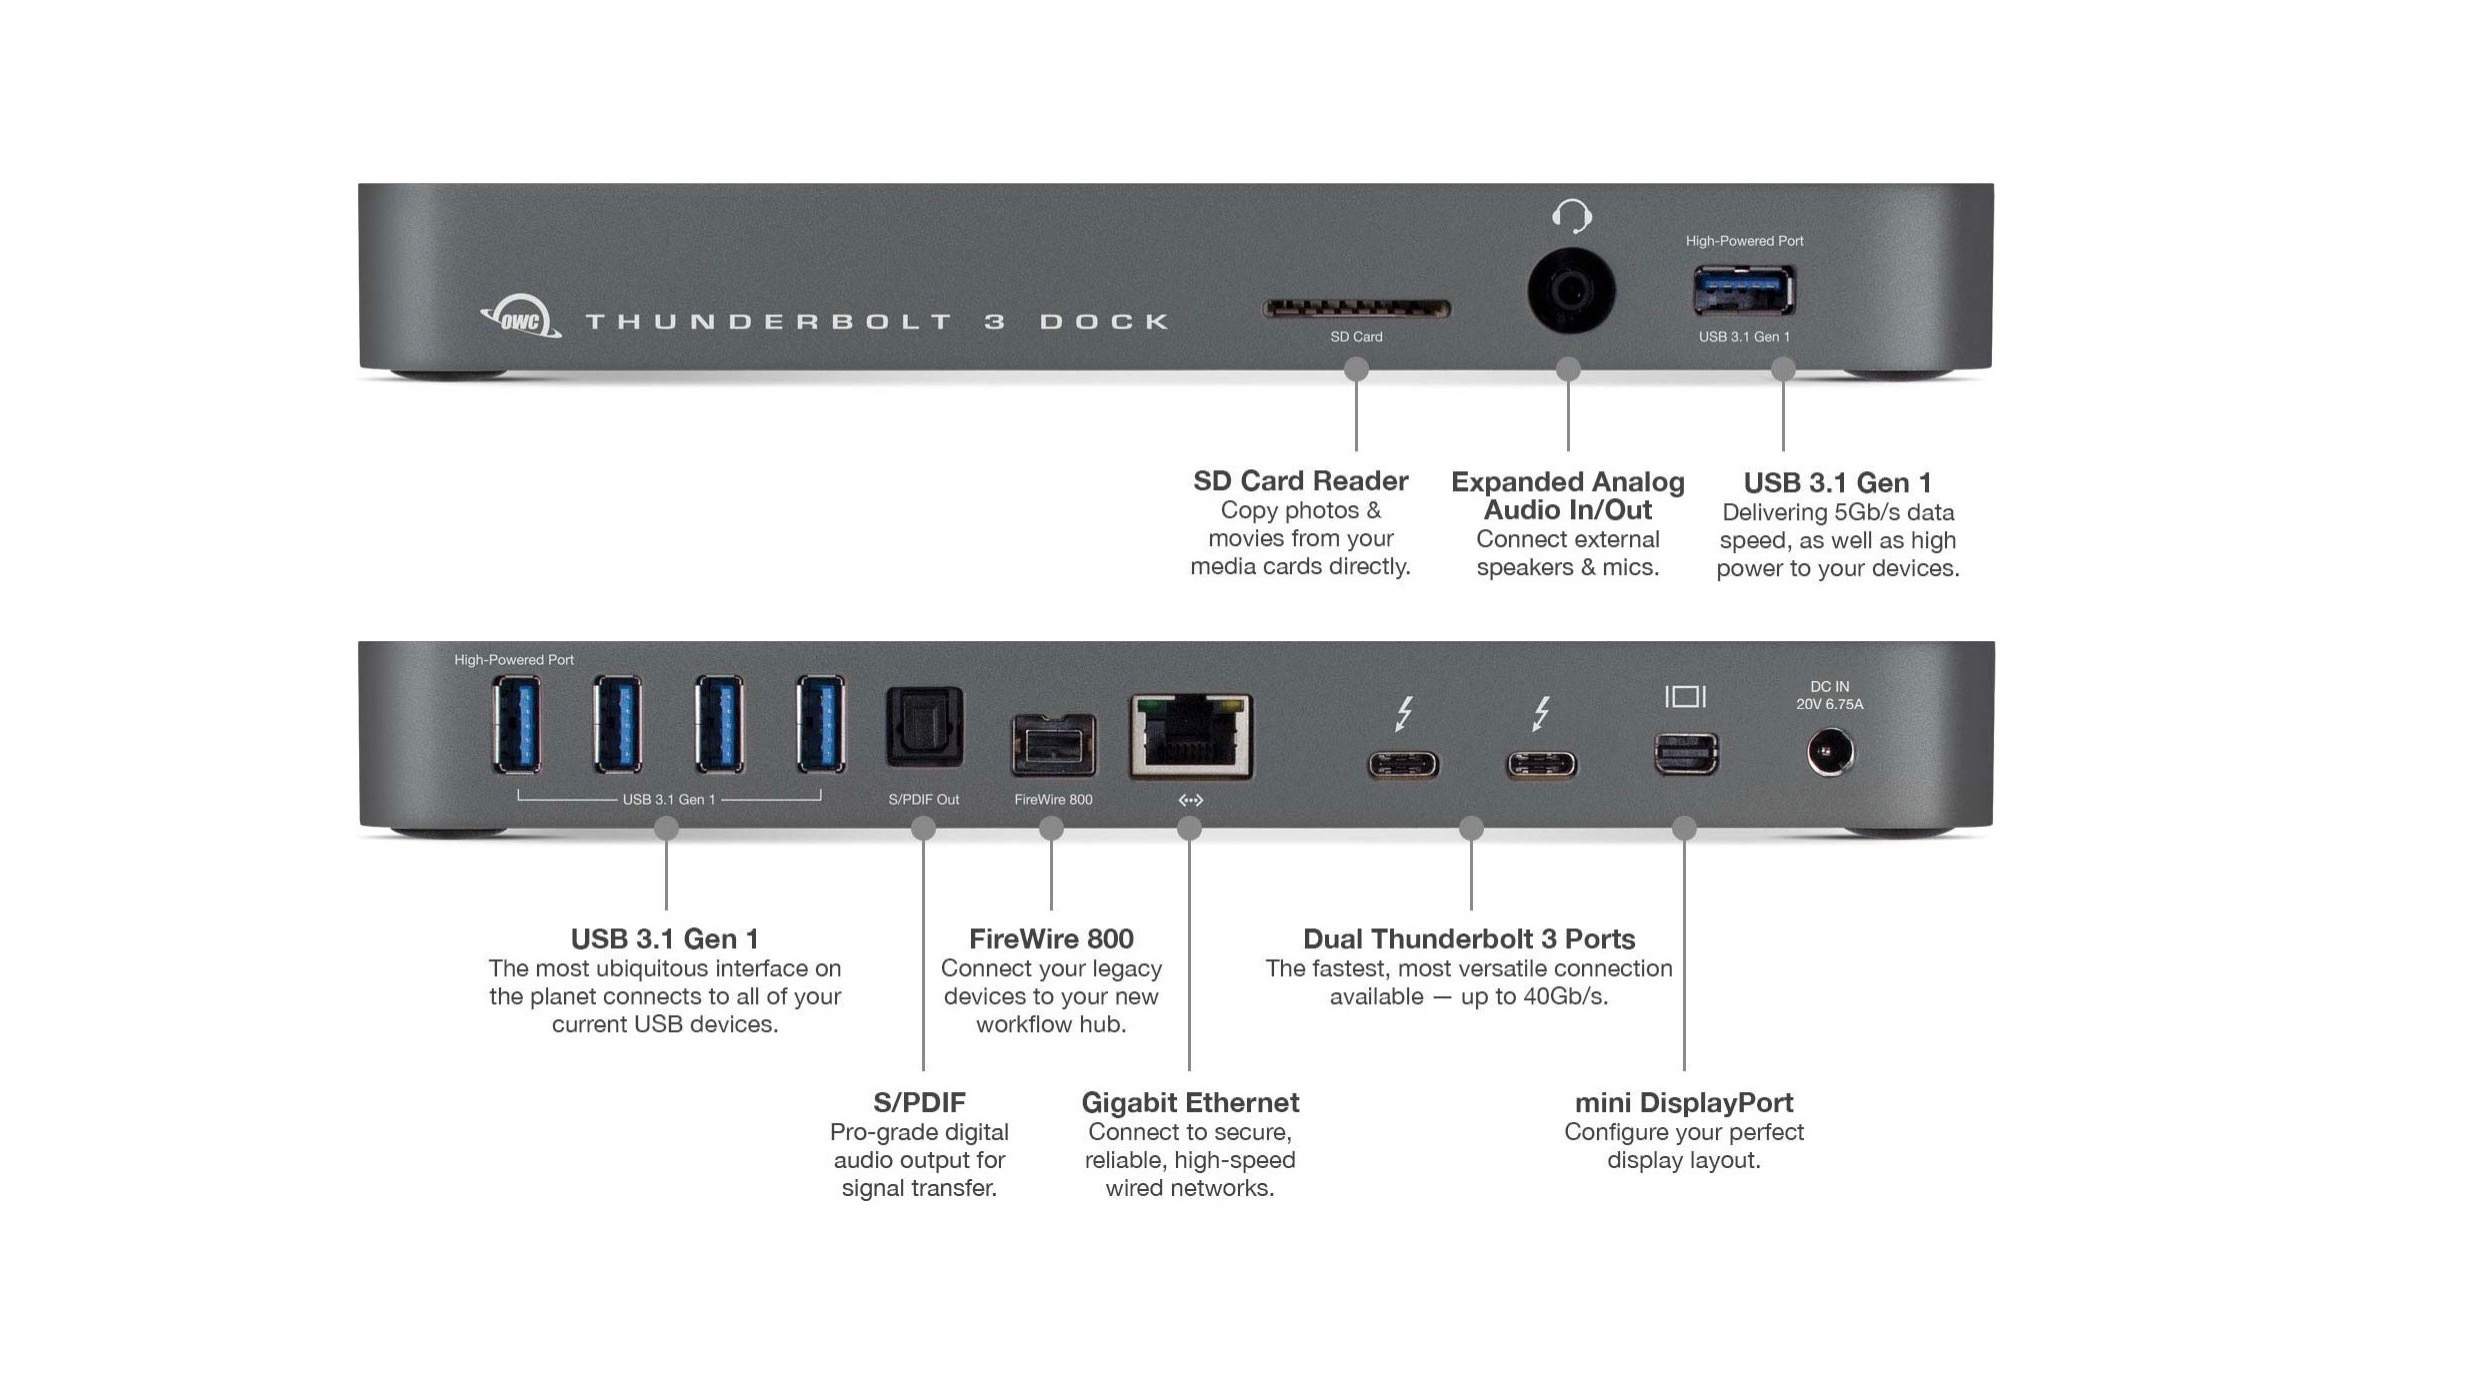 Need some legacy ports? OWC's 13-port Thunderbolt 3 dock is shipping and even includes Firewire